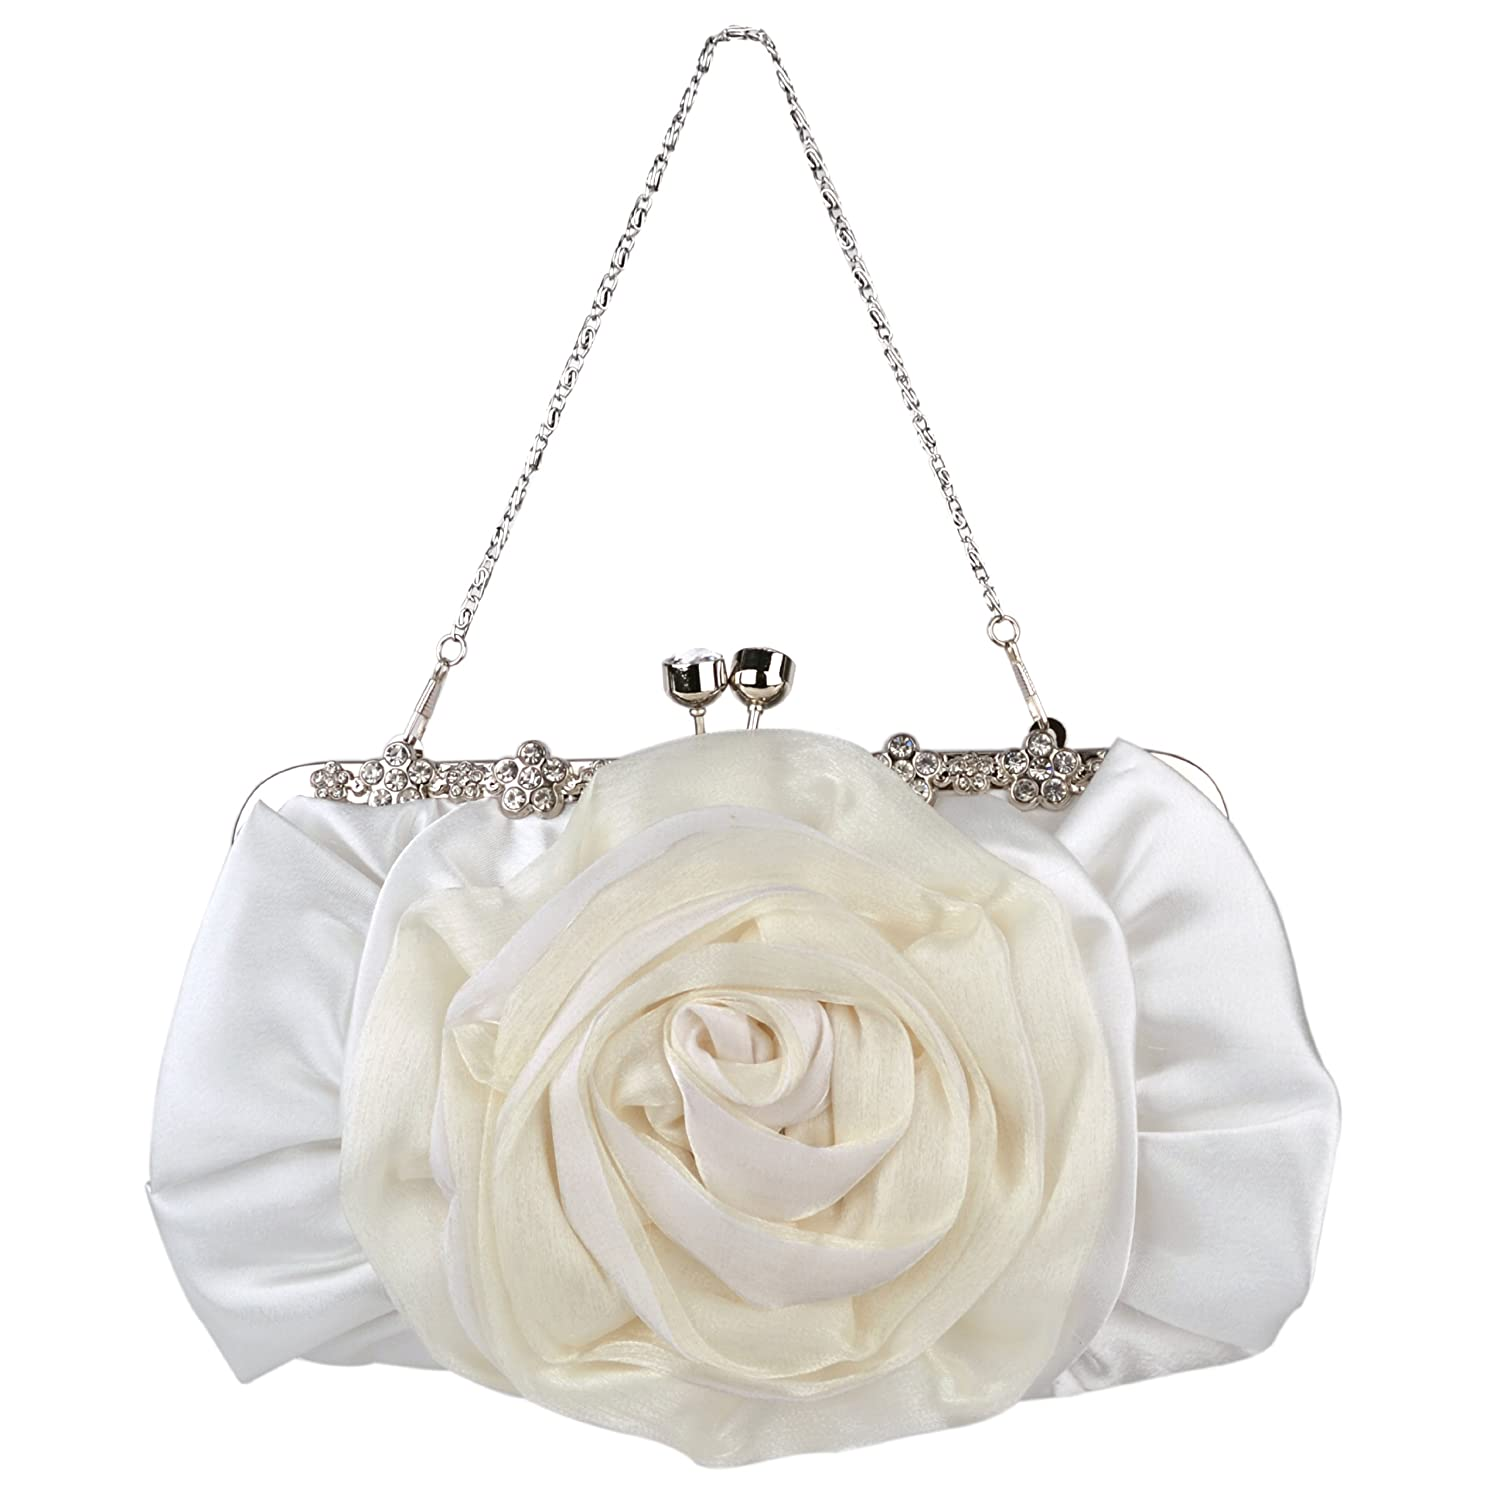 MG Collection - Cartera de mano para mujer blanco blanco: Amazon.es: Zapatos y complementos